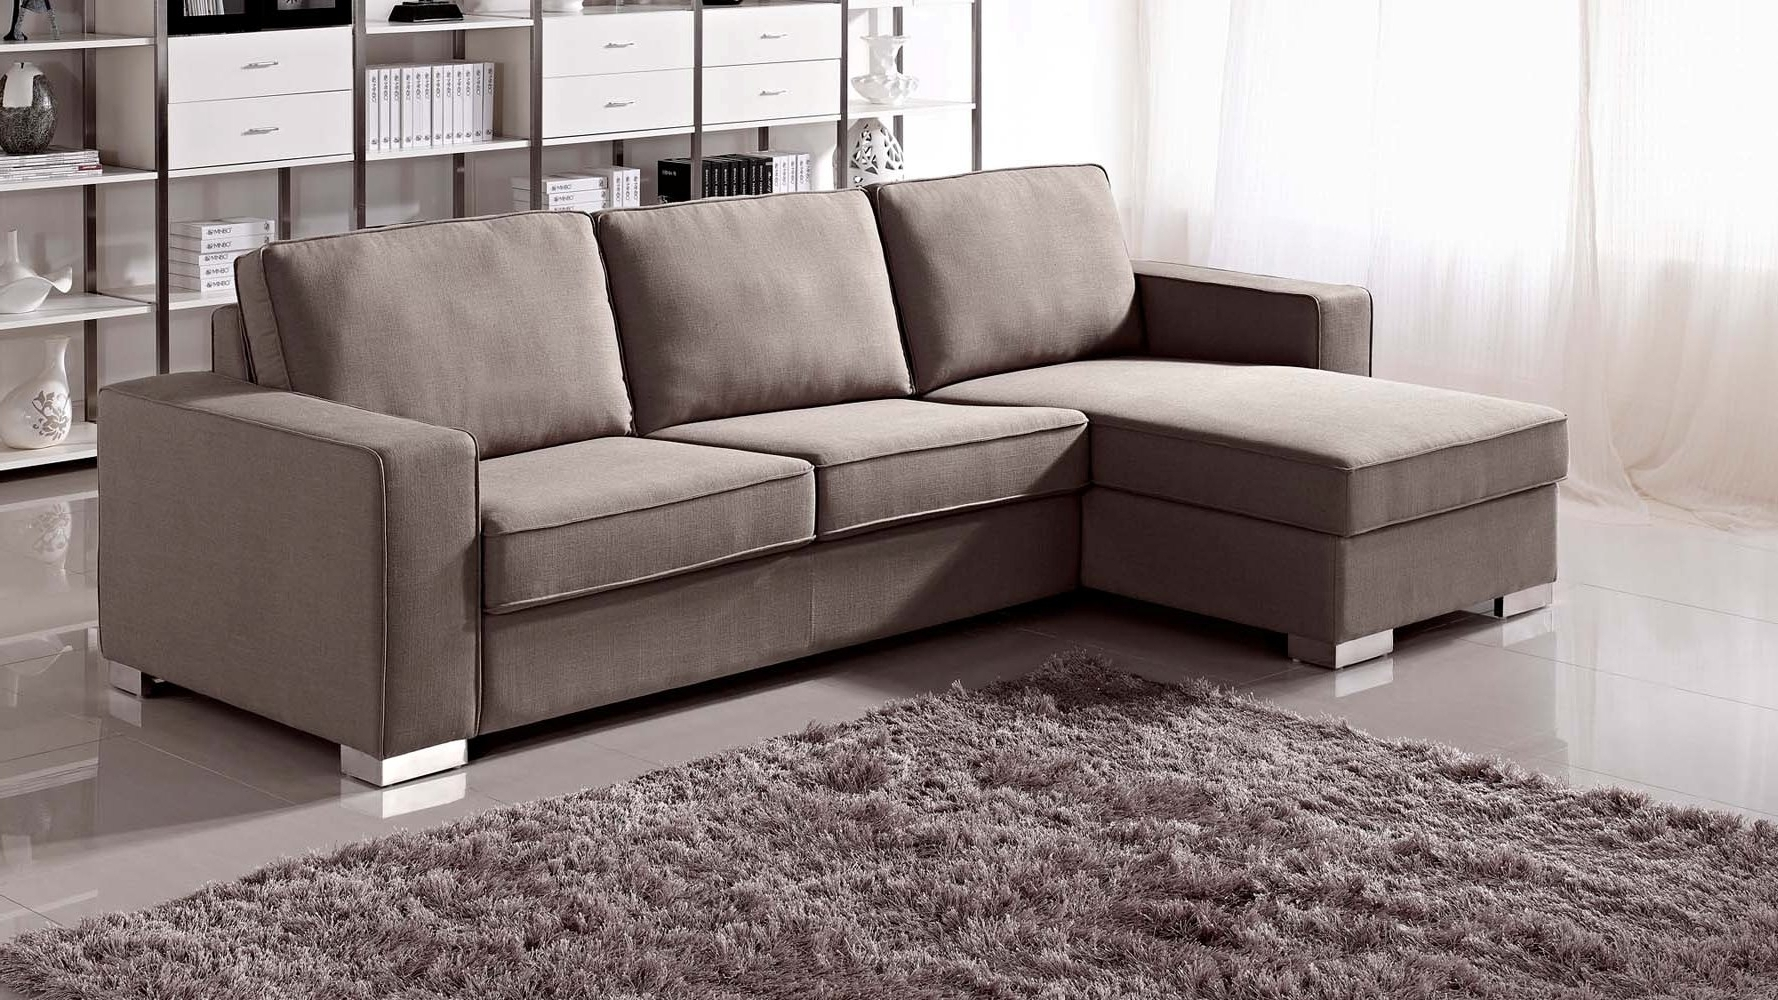 Current Modern Simple Sectional Sofa Sleeper With Storage And Purple Intended For Sleeper Sofas With Chaise (View 3 of 15)